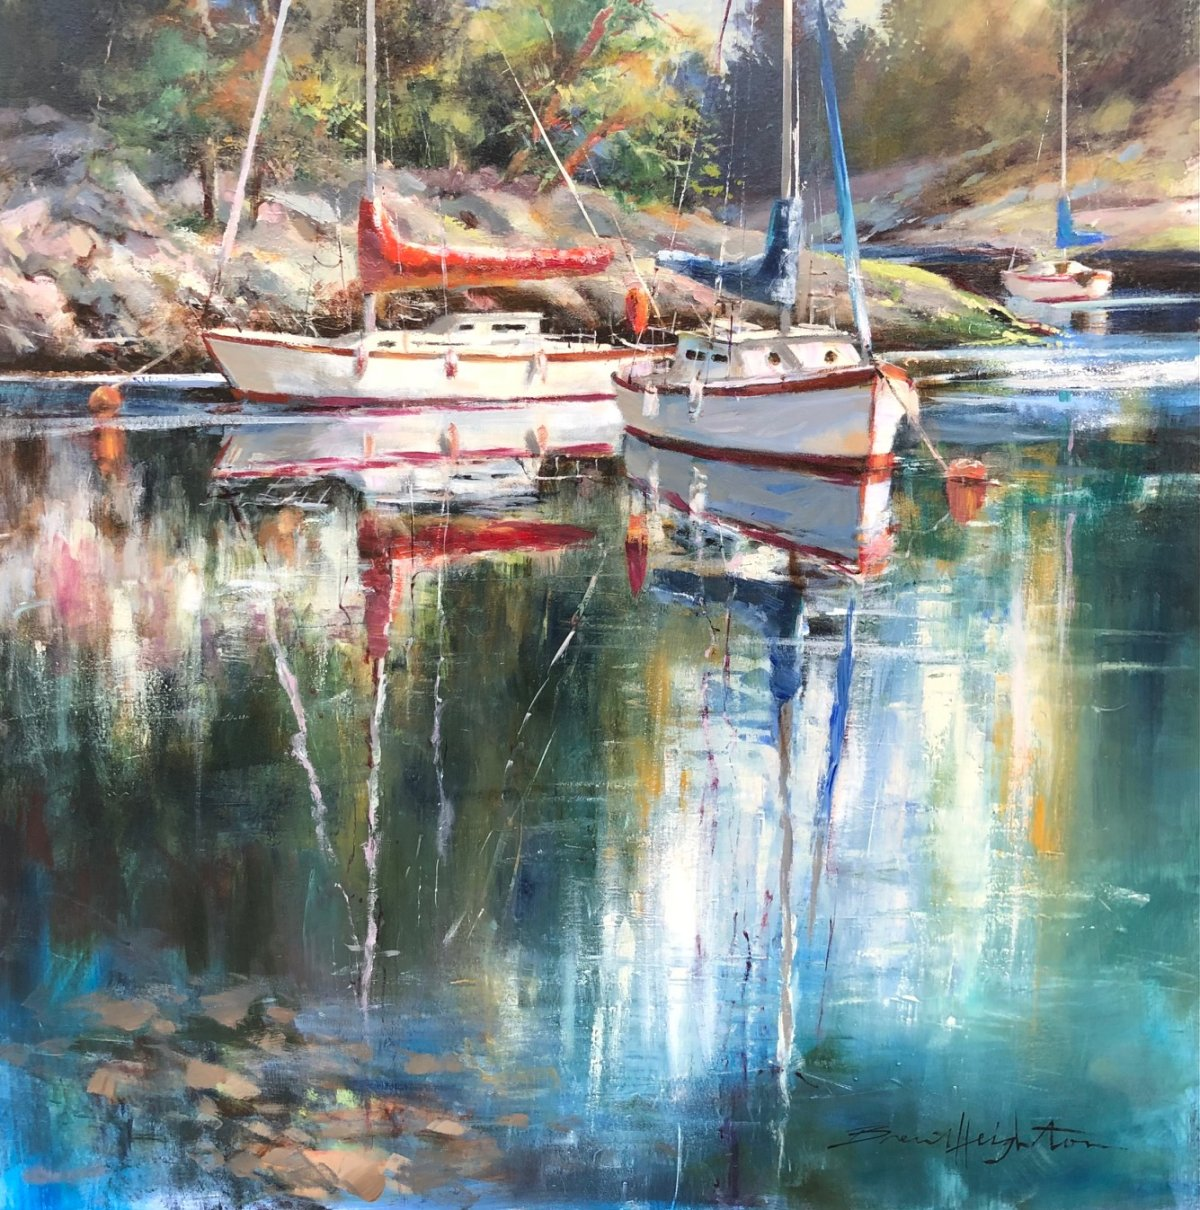 "Gallery 421 Welcomes You to our Spring Solo Exhibit Series. New collections are posted on first Friday at www.gallery421.ca. For appointments call (250) 448-8888. ""Transported"" Solo Exhibit with Brent Heighton April 9 Friday 6 - 8pm by appointment April 10 Saturday 1 - 3:30pm drop-in ""A Love for Painting"" with Guest Artist CJ Campbell April 30 Friday 6 - 8pm by appointment May 1 Saturday 1 - 3:30pm drop-in ""Joy"" Solo Exhibit with Angela Morgan June 11 Friday 6 - 8pm by appointment June 12 Saturday 1 - 3:30pm drop-in ""Elegance"" Solo Exhibit with Debra Martin June 18 Friday 6 - 8pm by appointment June 19 Saturday 1 - 3:30pm drop-in ""50 Years Retrospective"" Solo Exhibit with Jonn Einerssen June 25 Friday 6 - 8pm by appointment June 26 Saturday 1 - 3:30pm drop-in."